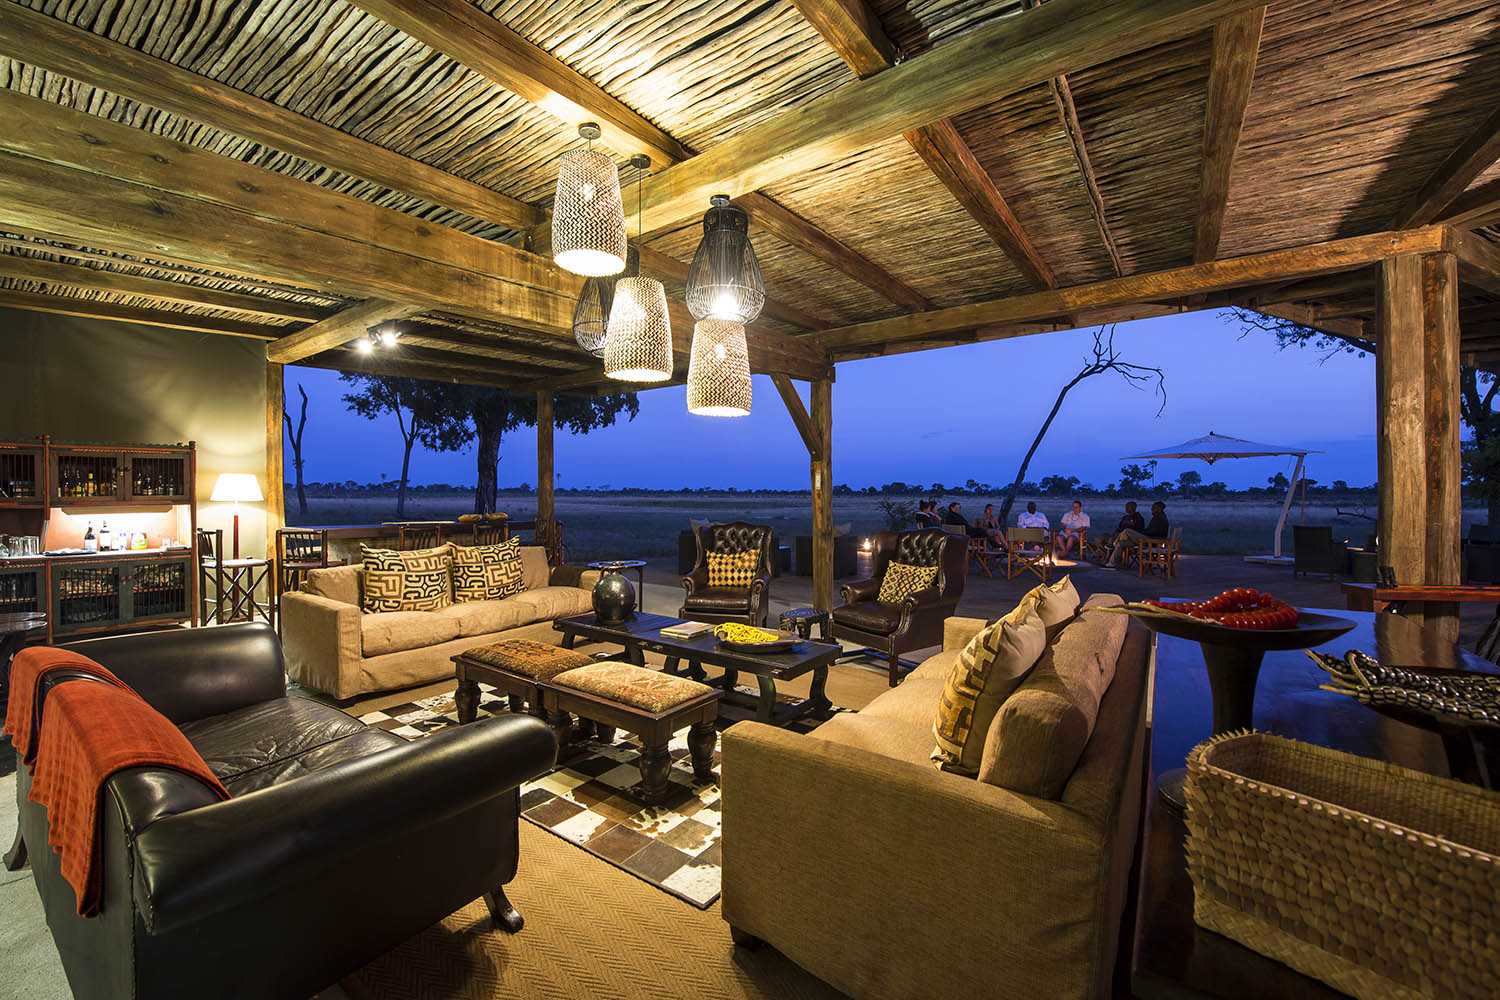 davisons camp hwange-national-park-zimbabwe-lodges-tents-wilderness-main-area